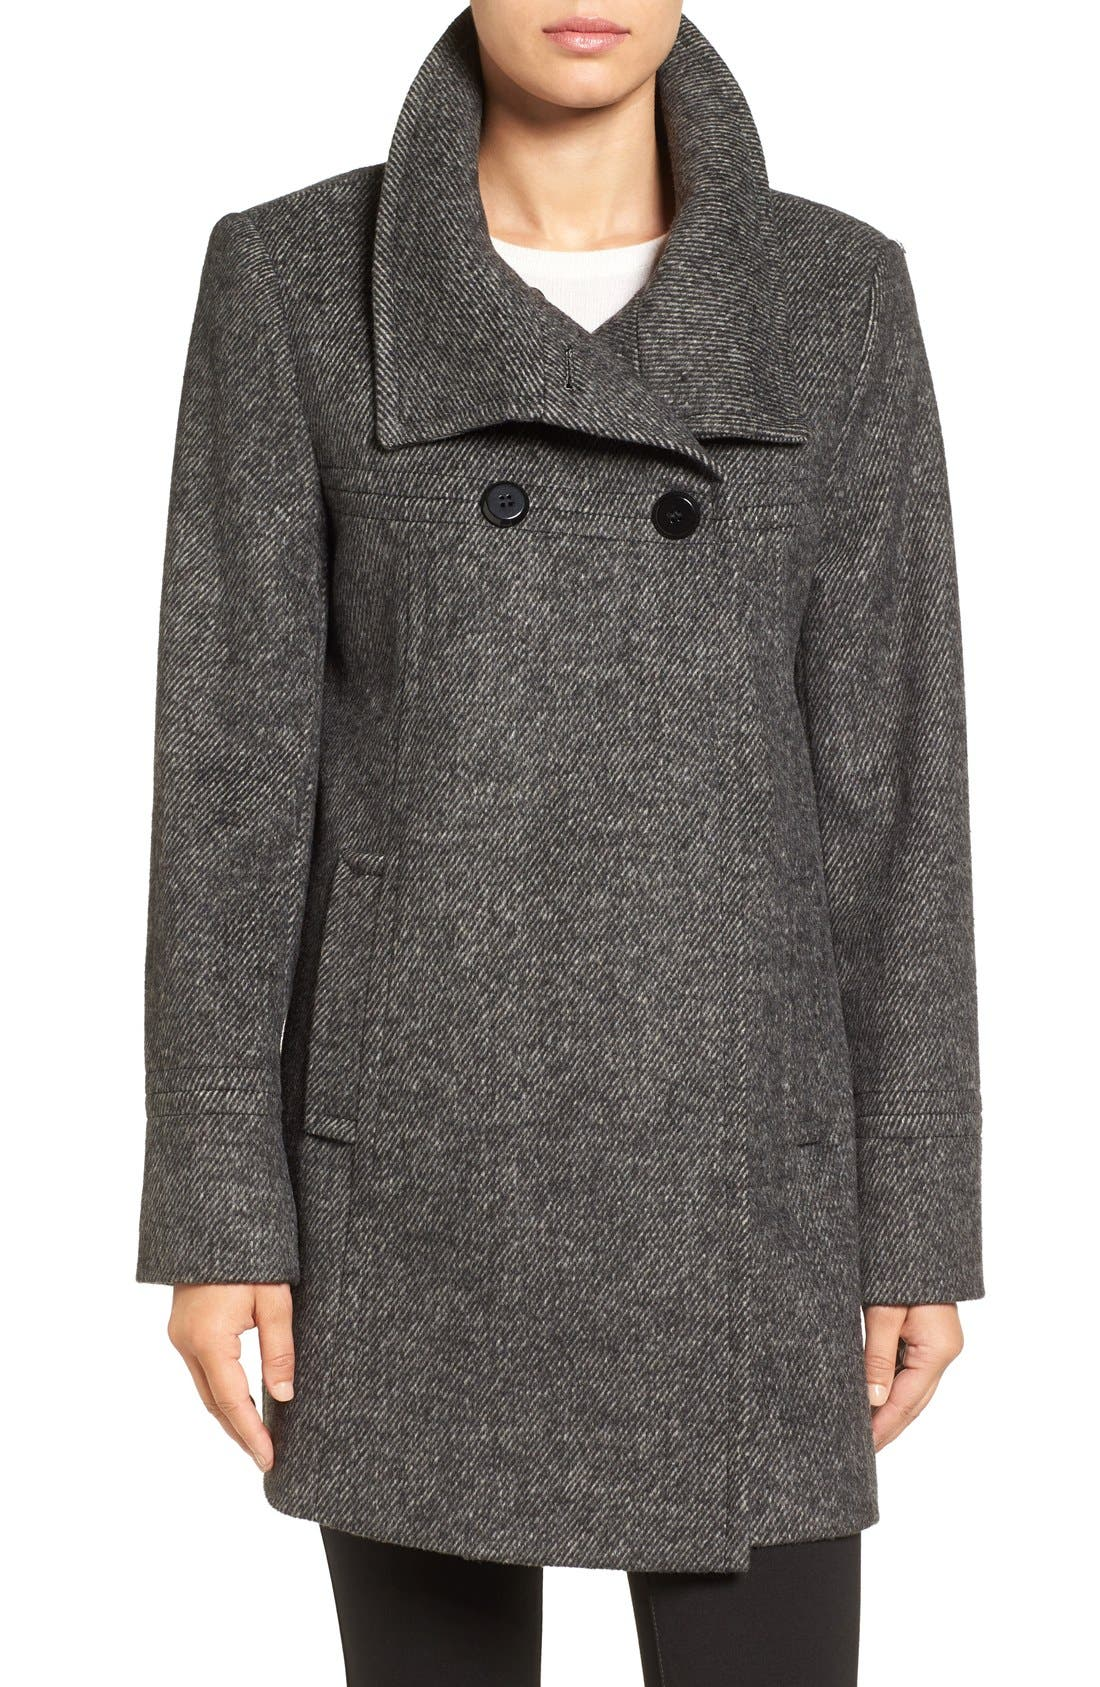 Double Breasted Swing Coat,                             Main thumbnail 1, color,                             Black/ Charcoal